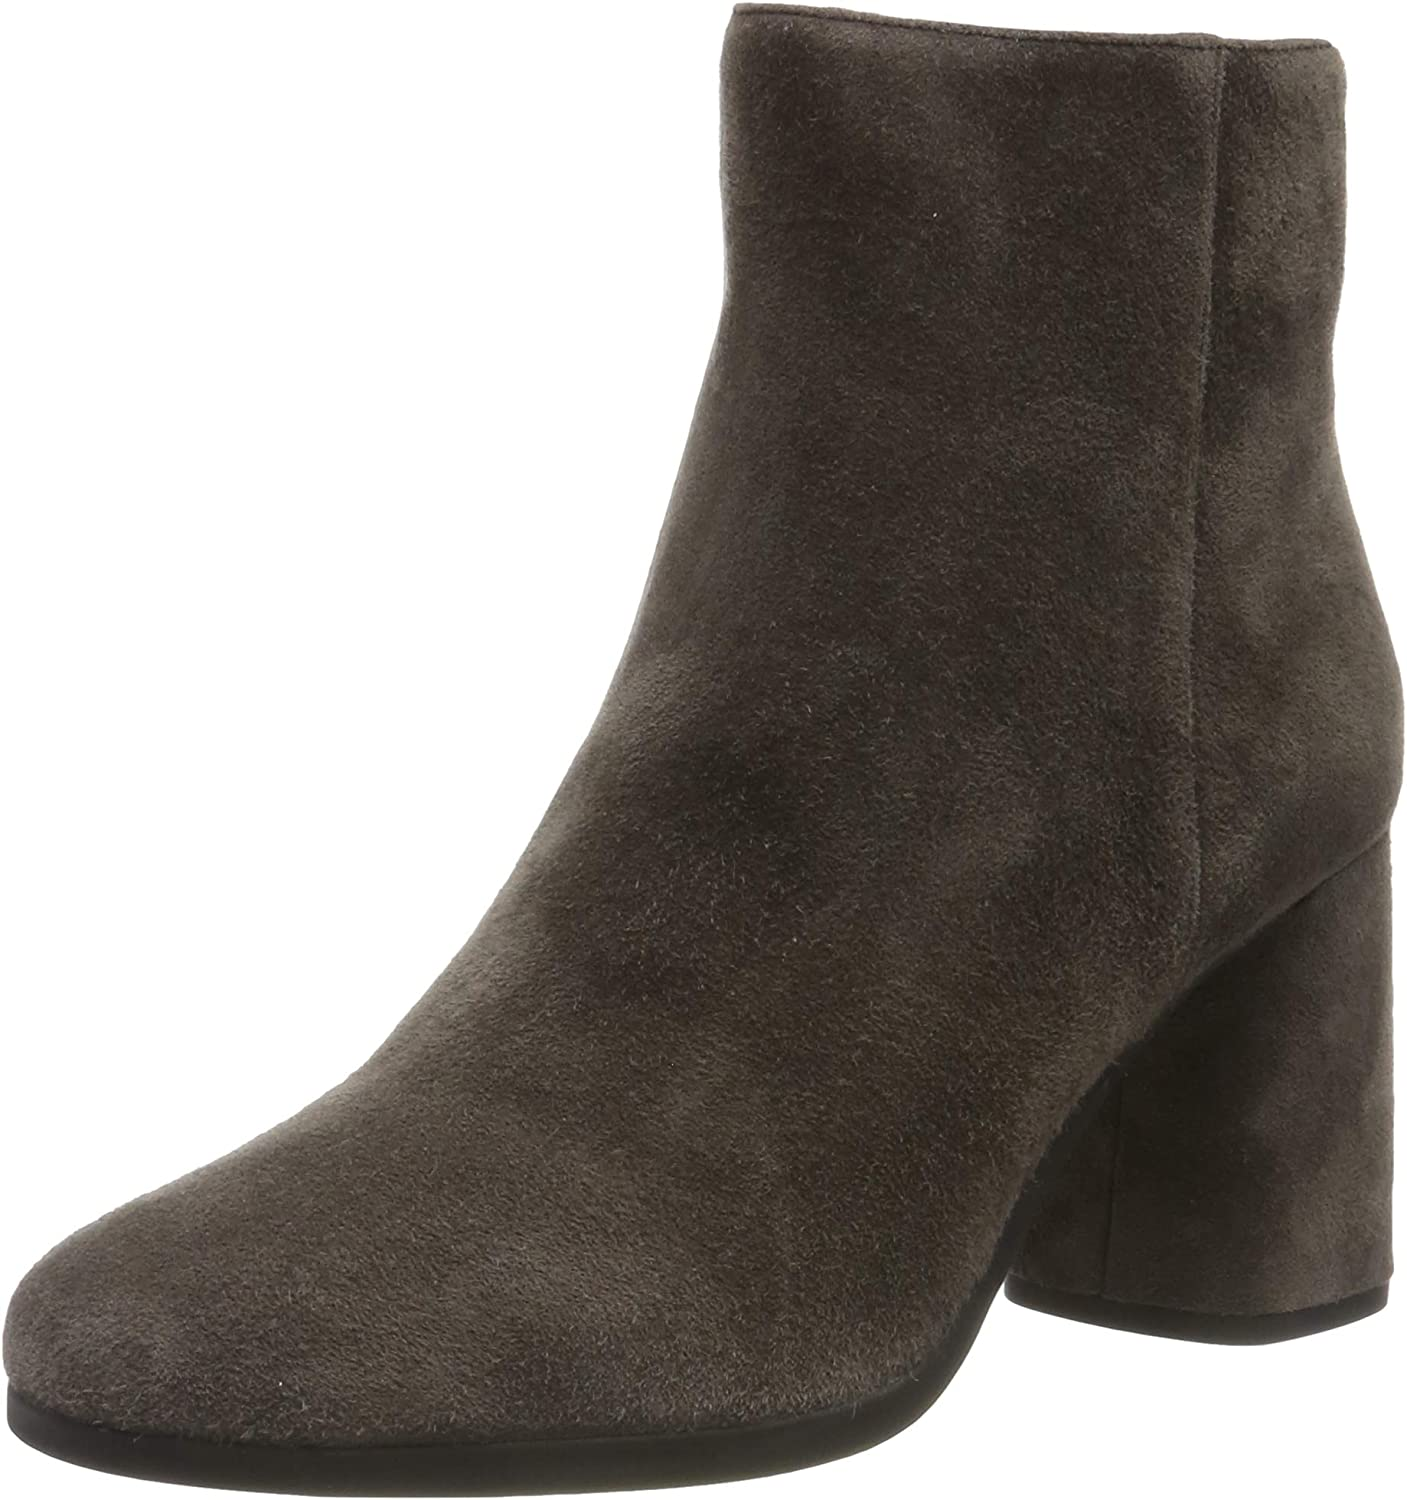 Geox Women's Brand Cheap Sale Venue Boots Bombing new work Ankle